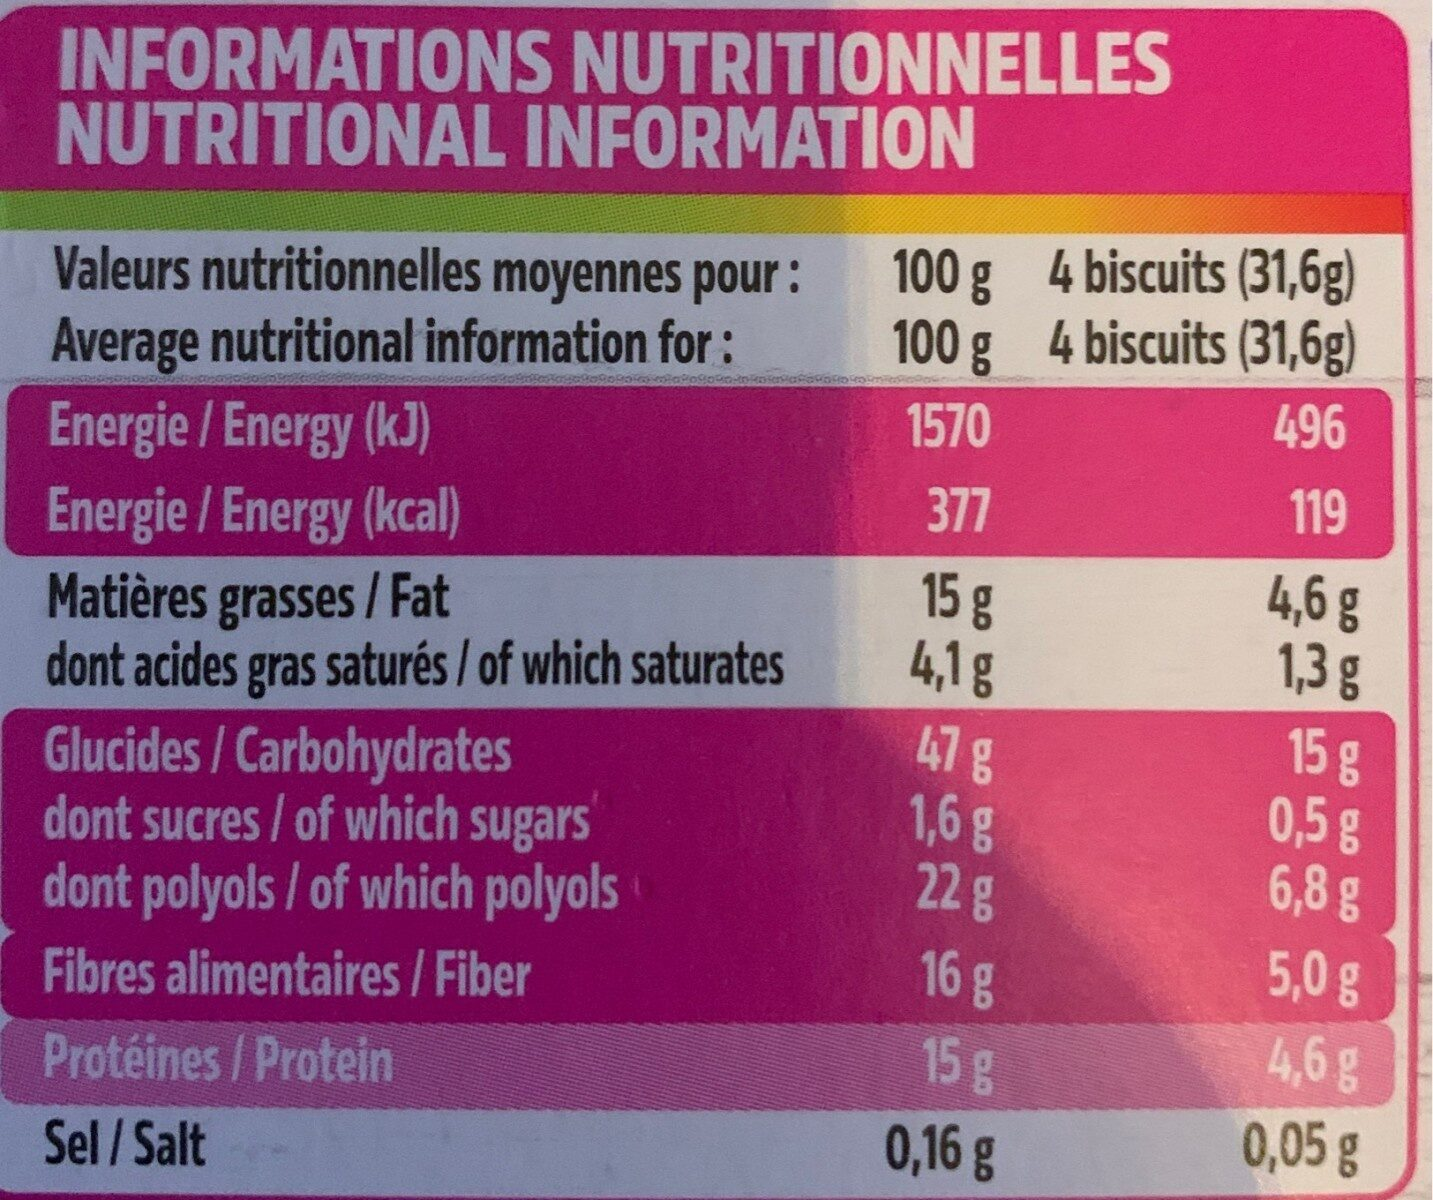 Biscuits au pur son d'avoine aux pépites de chocolat - Nutrition facts - fr